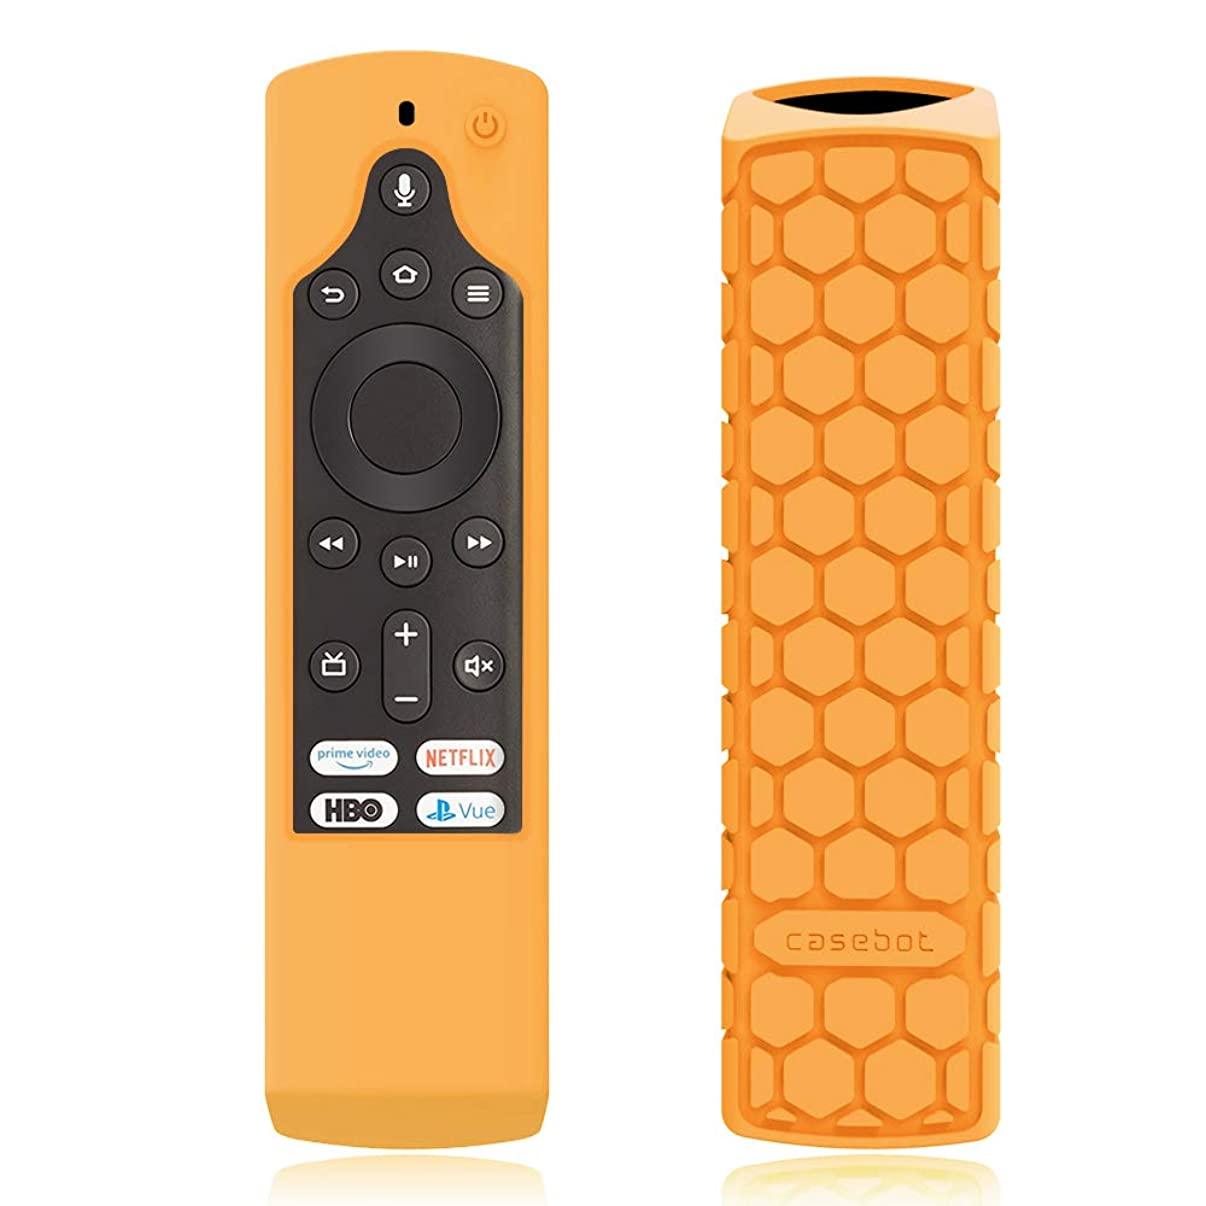 CaseBot Silicone Case for Fire TV Edition Remote - Honey Comb Series [Anti Slip] Shock Proof Cover for Amazon All-New Insignia/Toshiba 4K Smart TV Voice Remote/Element Smart TV Voice Remote, Orange